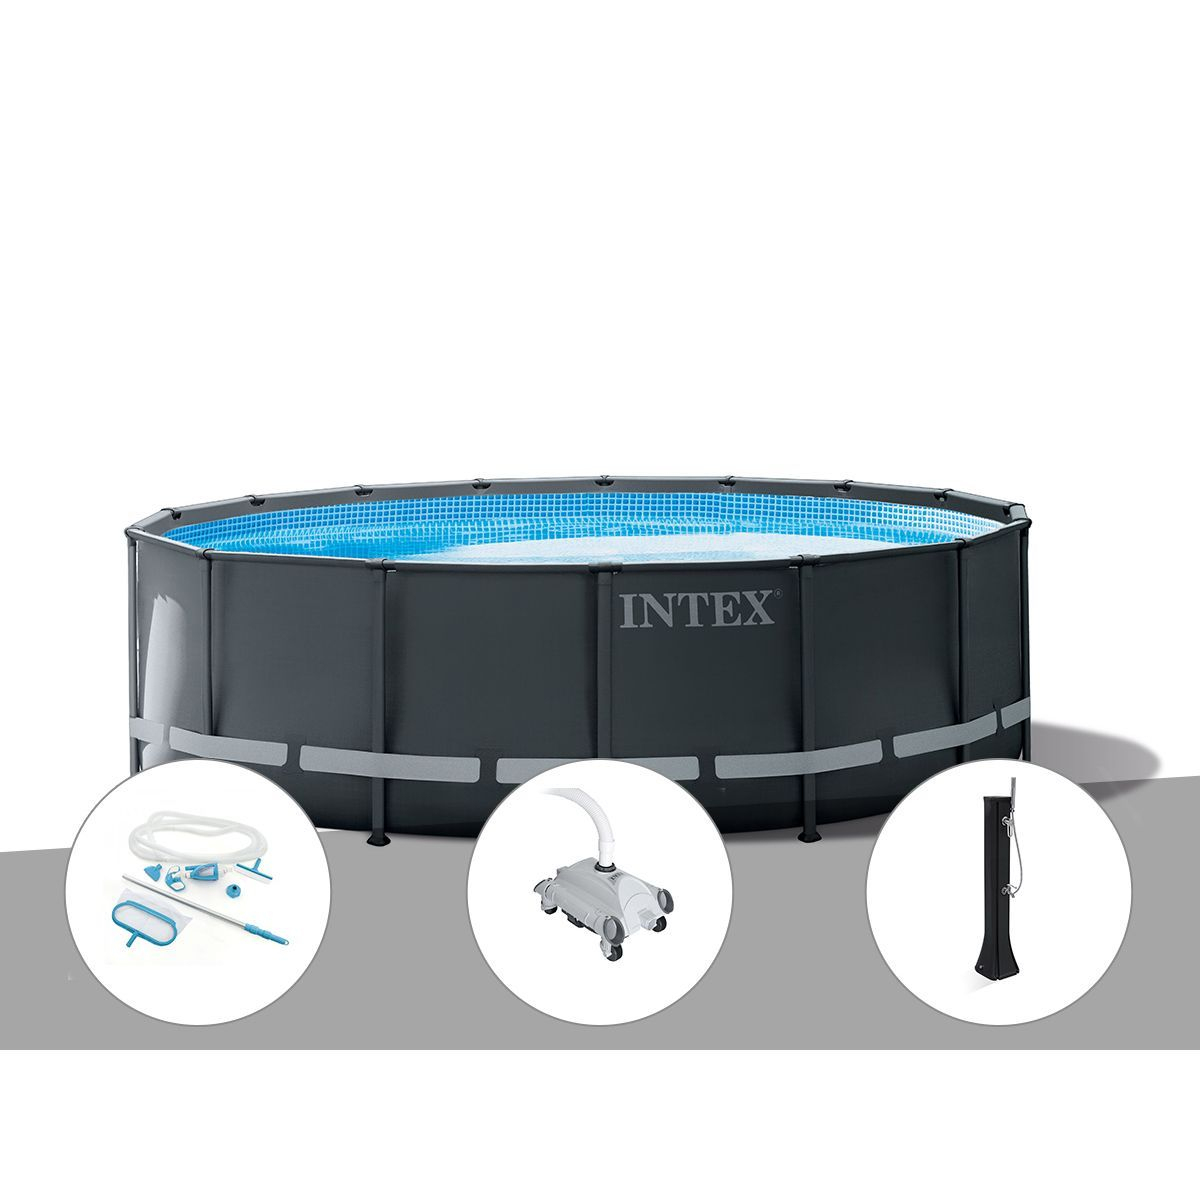 Kit Piscine Tubulaire Intex Ultra Xtr Frame Rectangulaire dedans Piscine Intex Ultra Xtr Rectangulaire 5 49X2 74X1 32